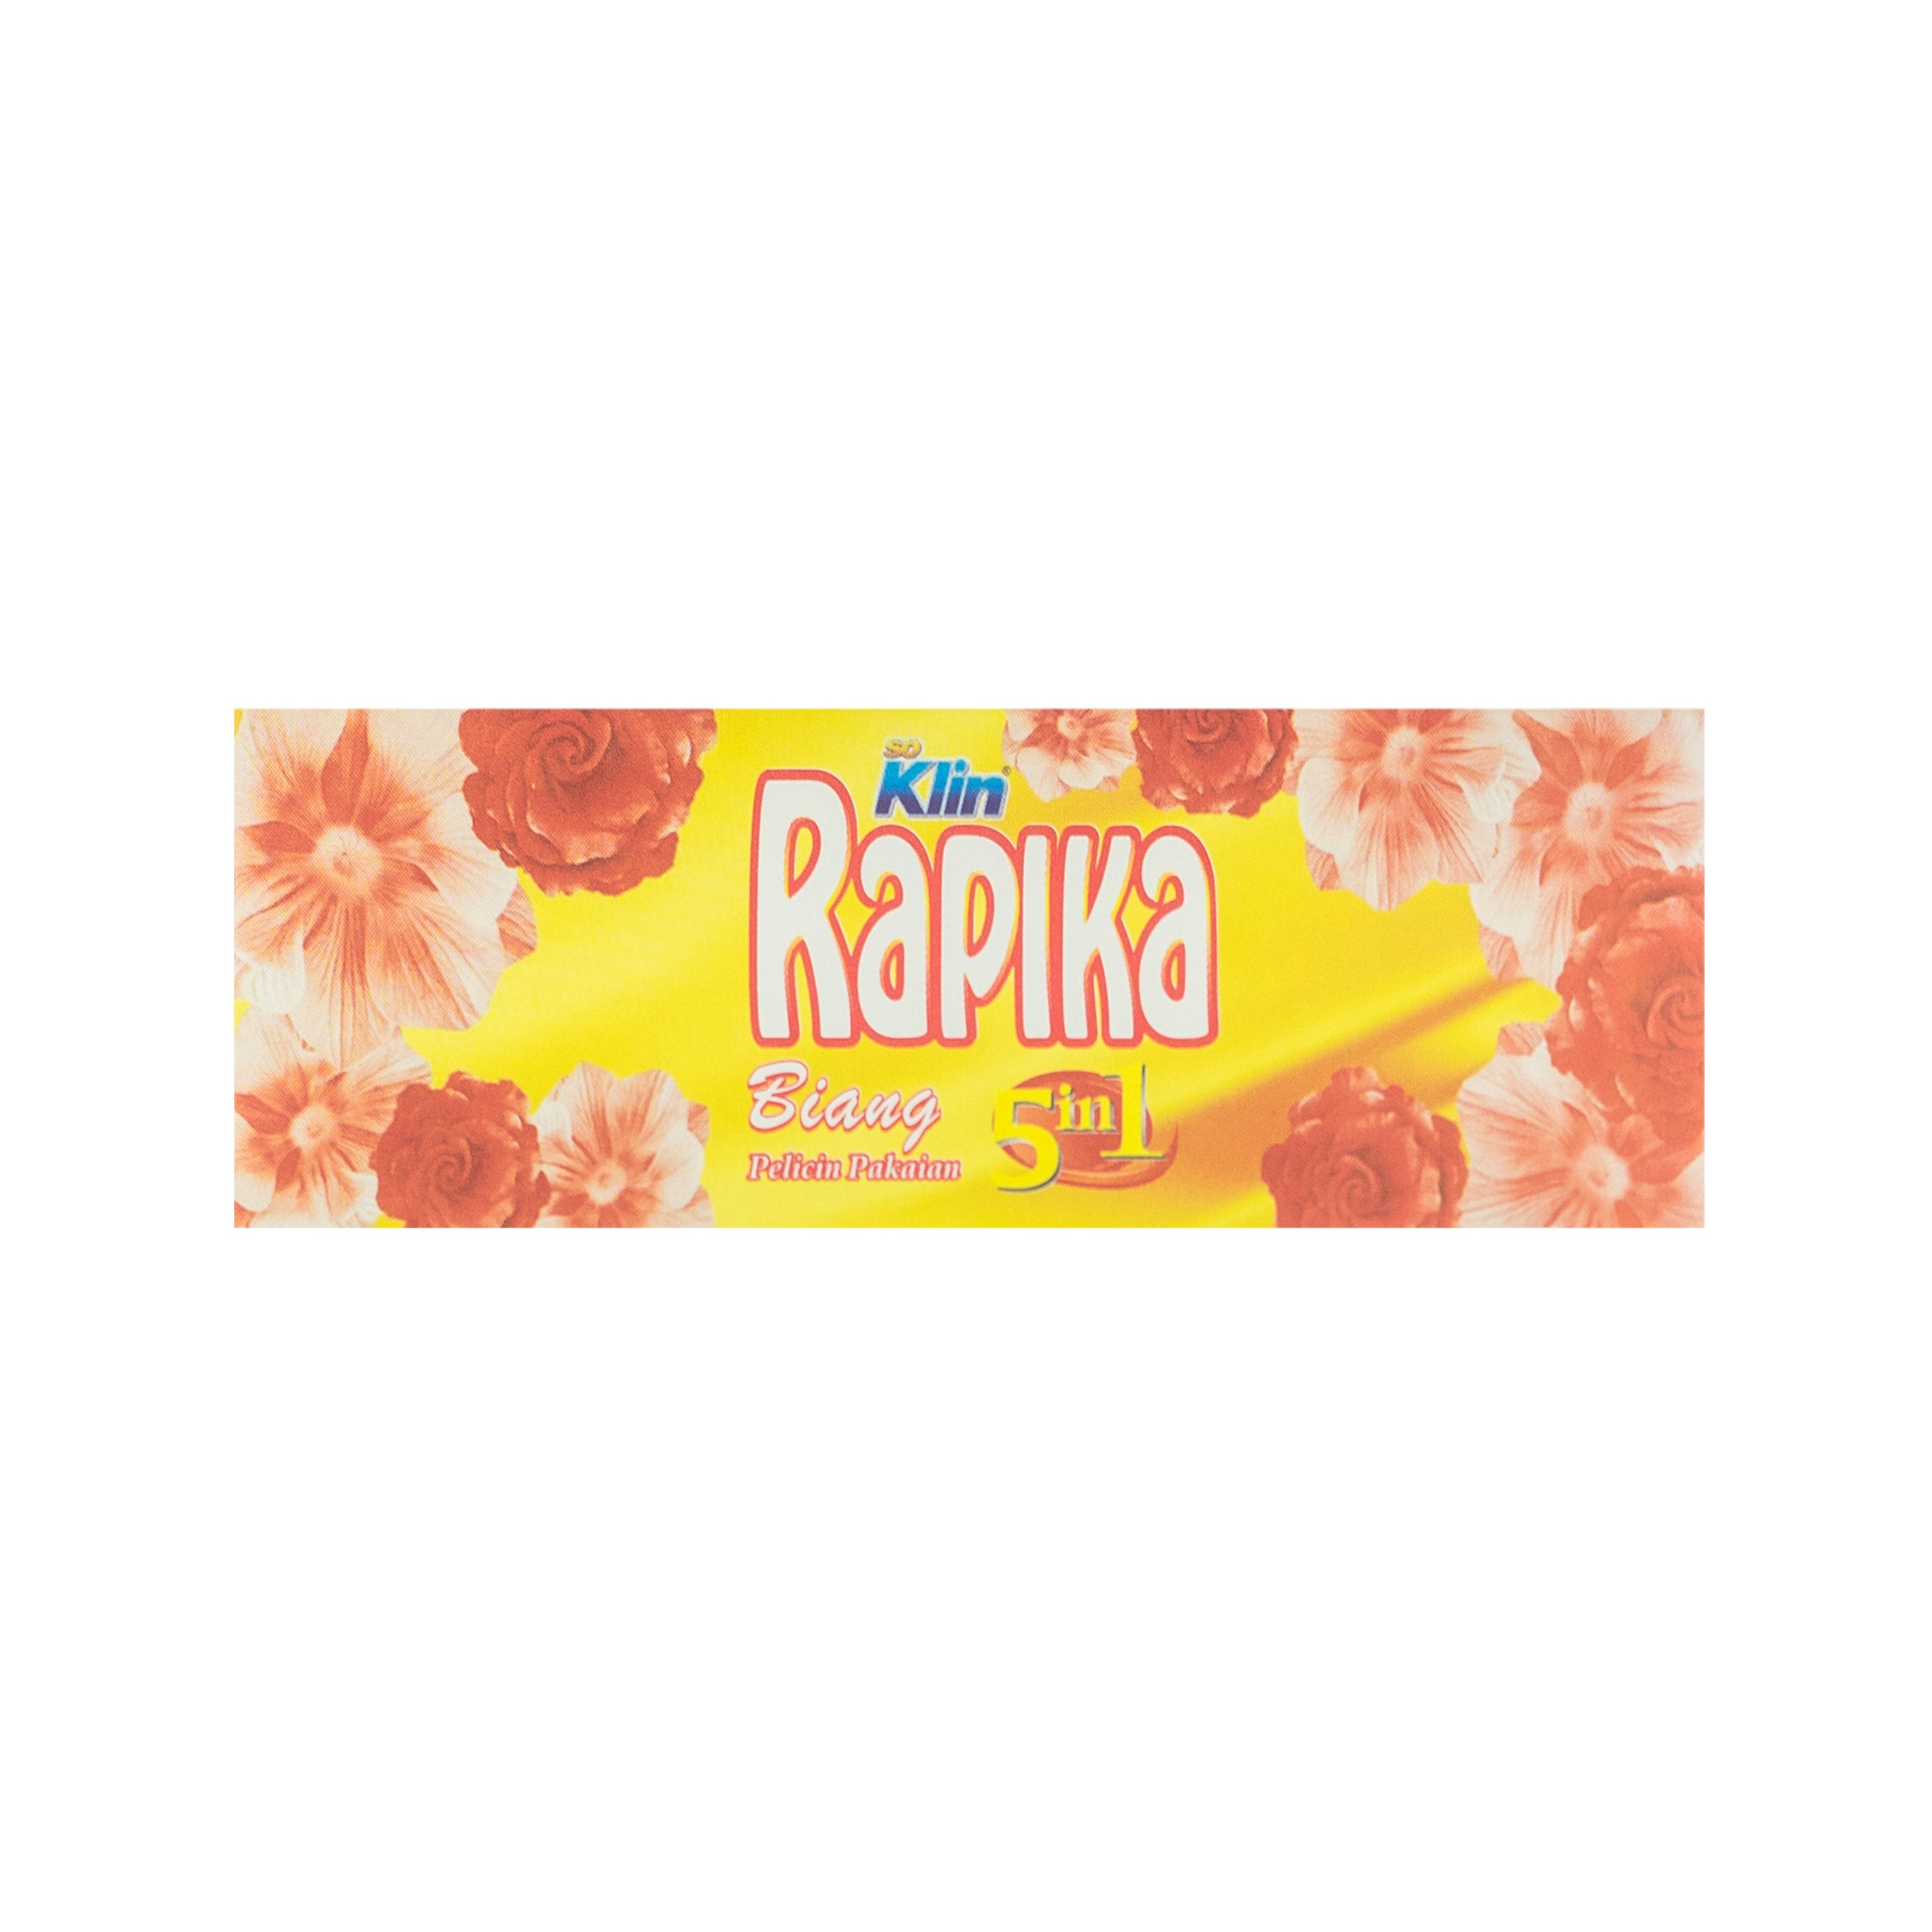 Rapika, Biang 3 in 1, Luxurious Gold, 25 ml X 4 sachets